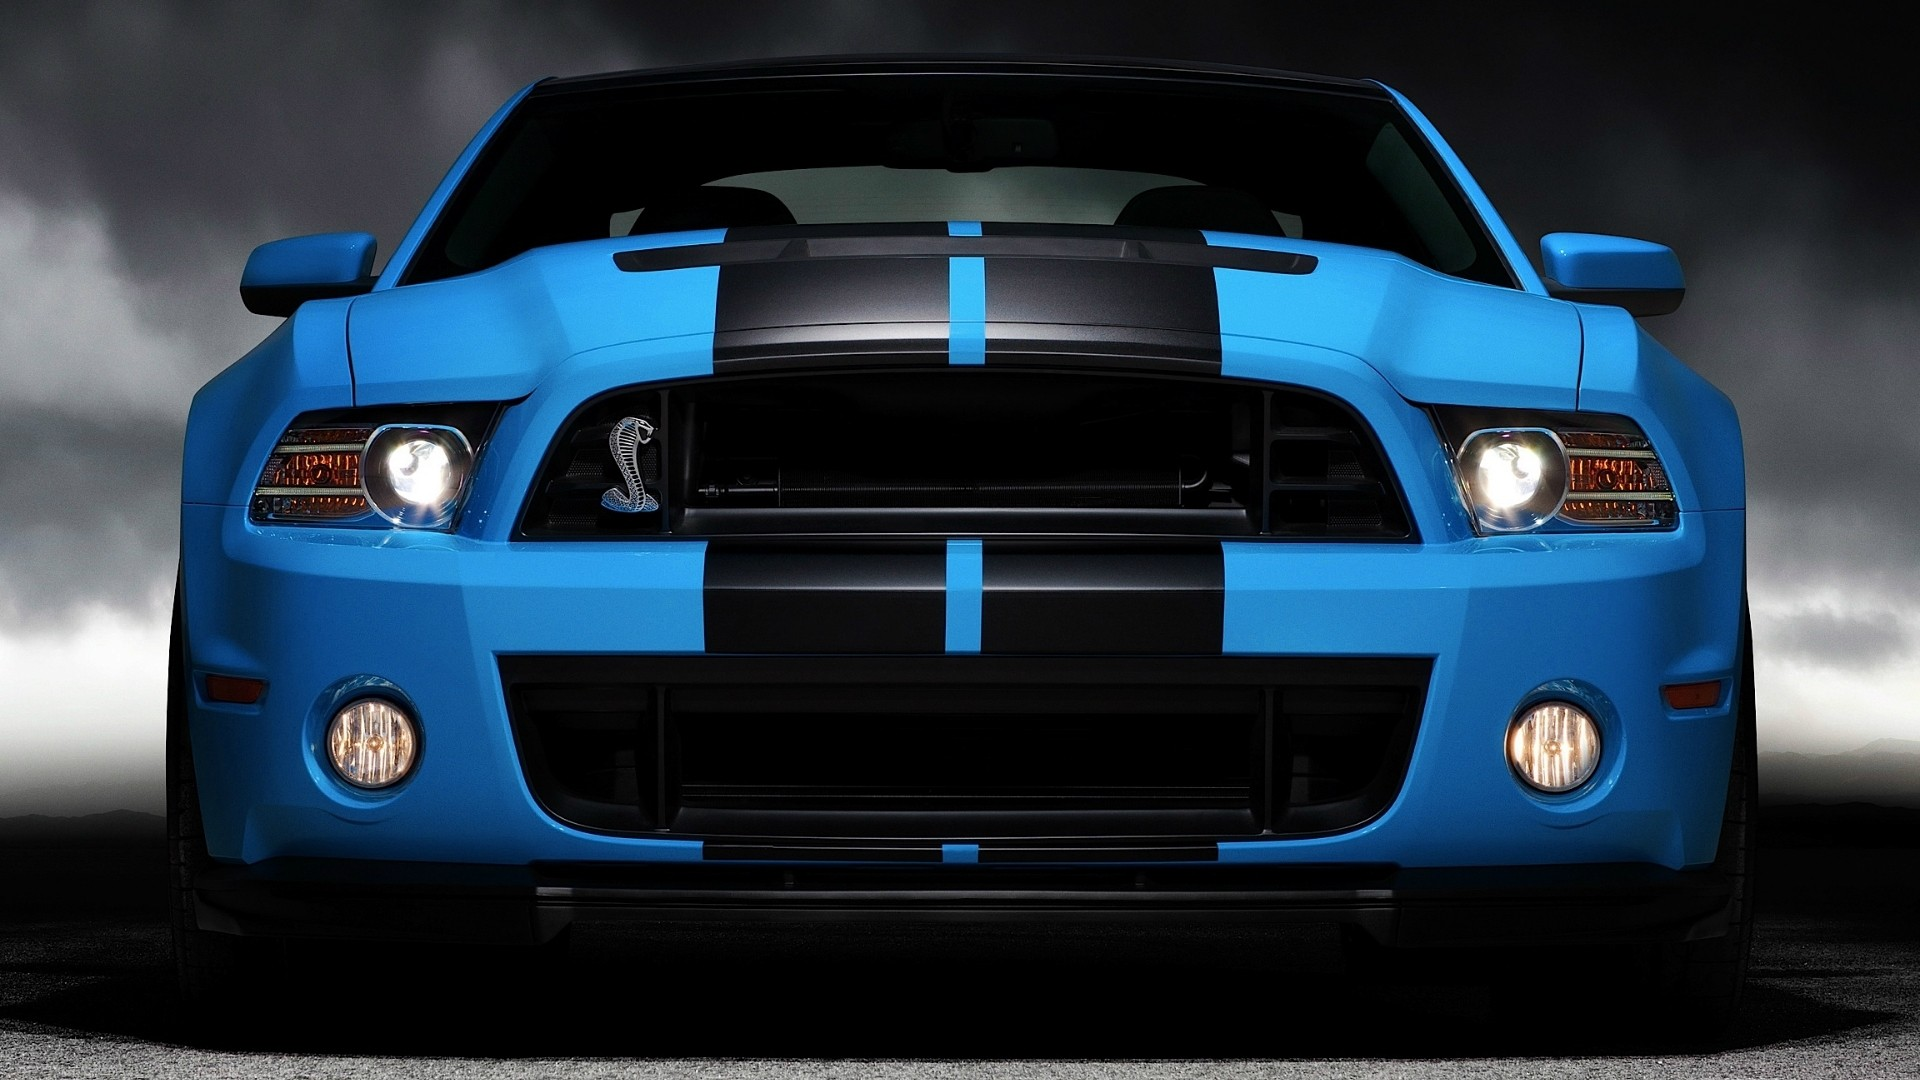 Blue Cars Vehicles Ford Mustang Ford Shelby Ford Mustang Shelby Gt500 Wallpaper 1920x1080 87717 Wallpaperup